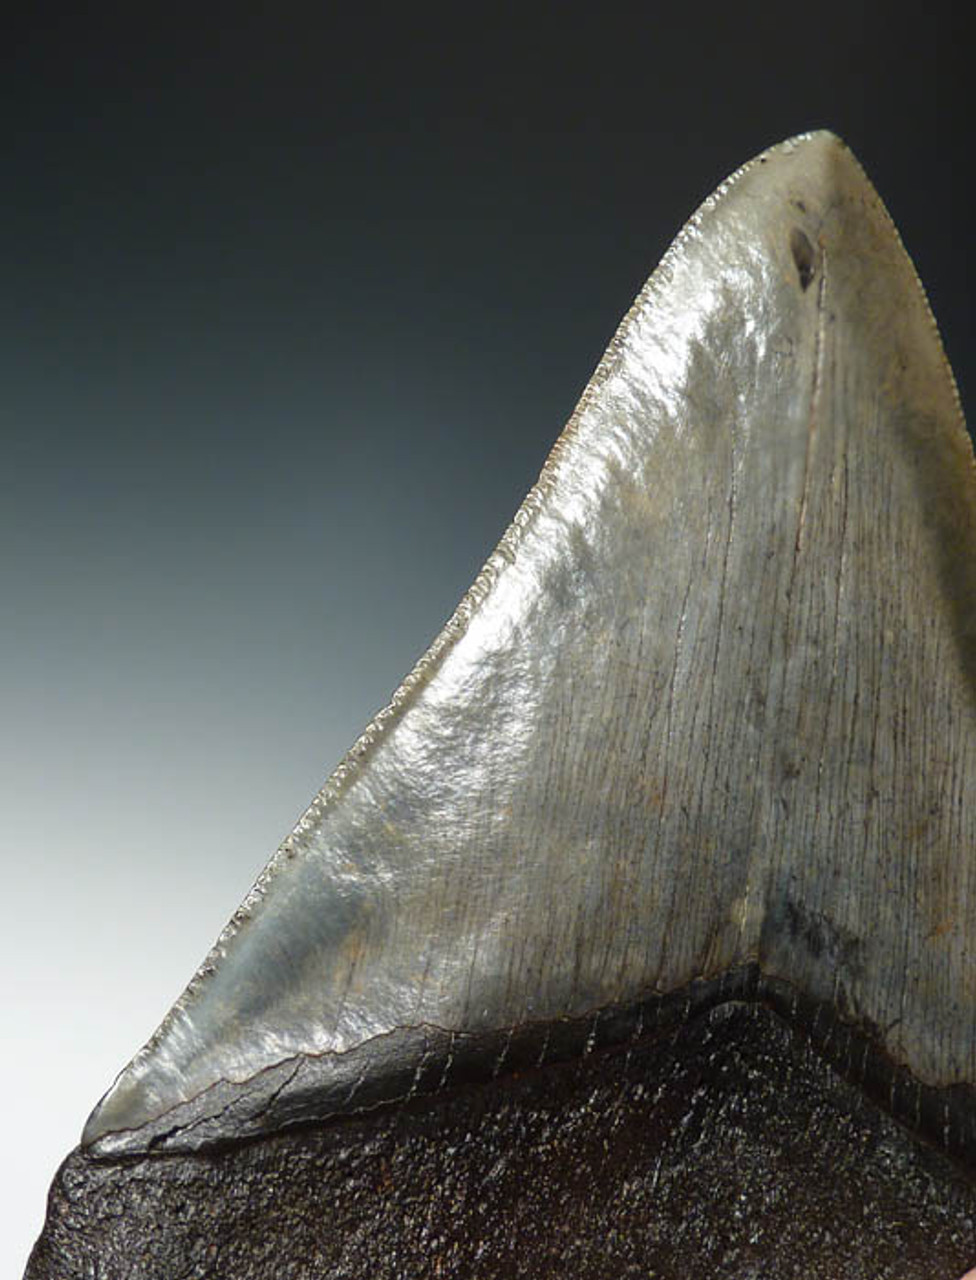 SH6-198 - COLLECTOR GRADE 5.25 INCH MEGALODON SHARK FOSSIL TOOTH